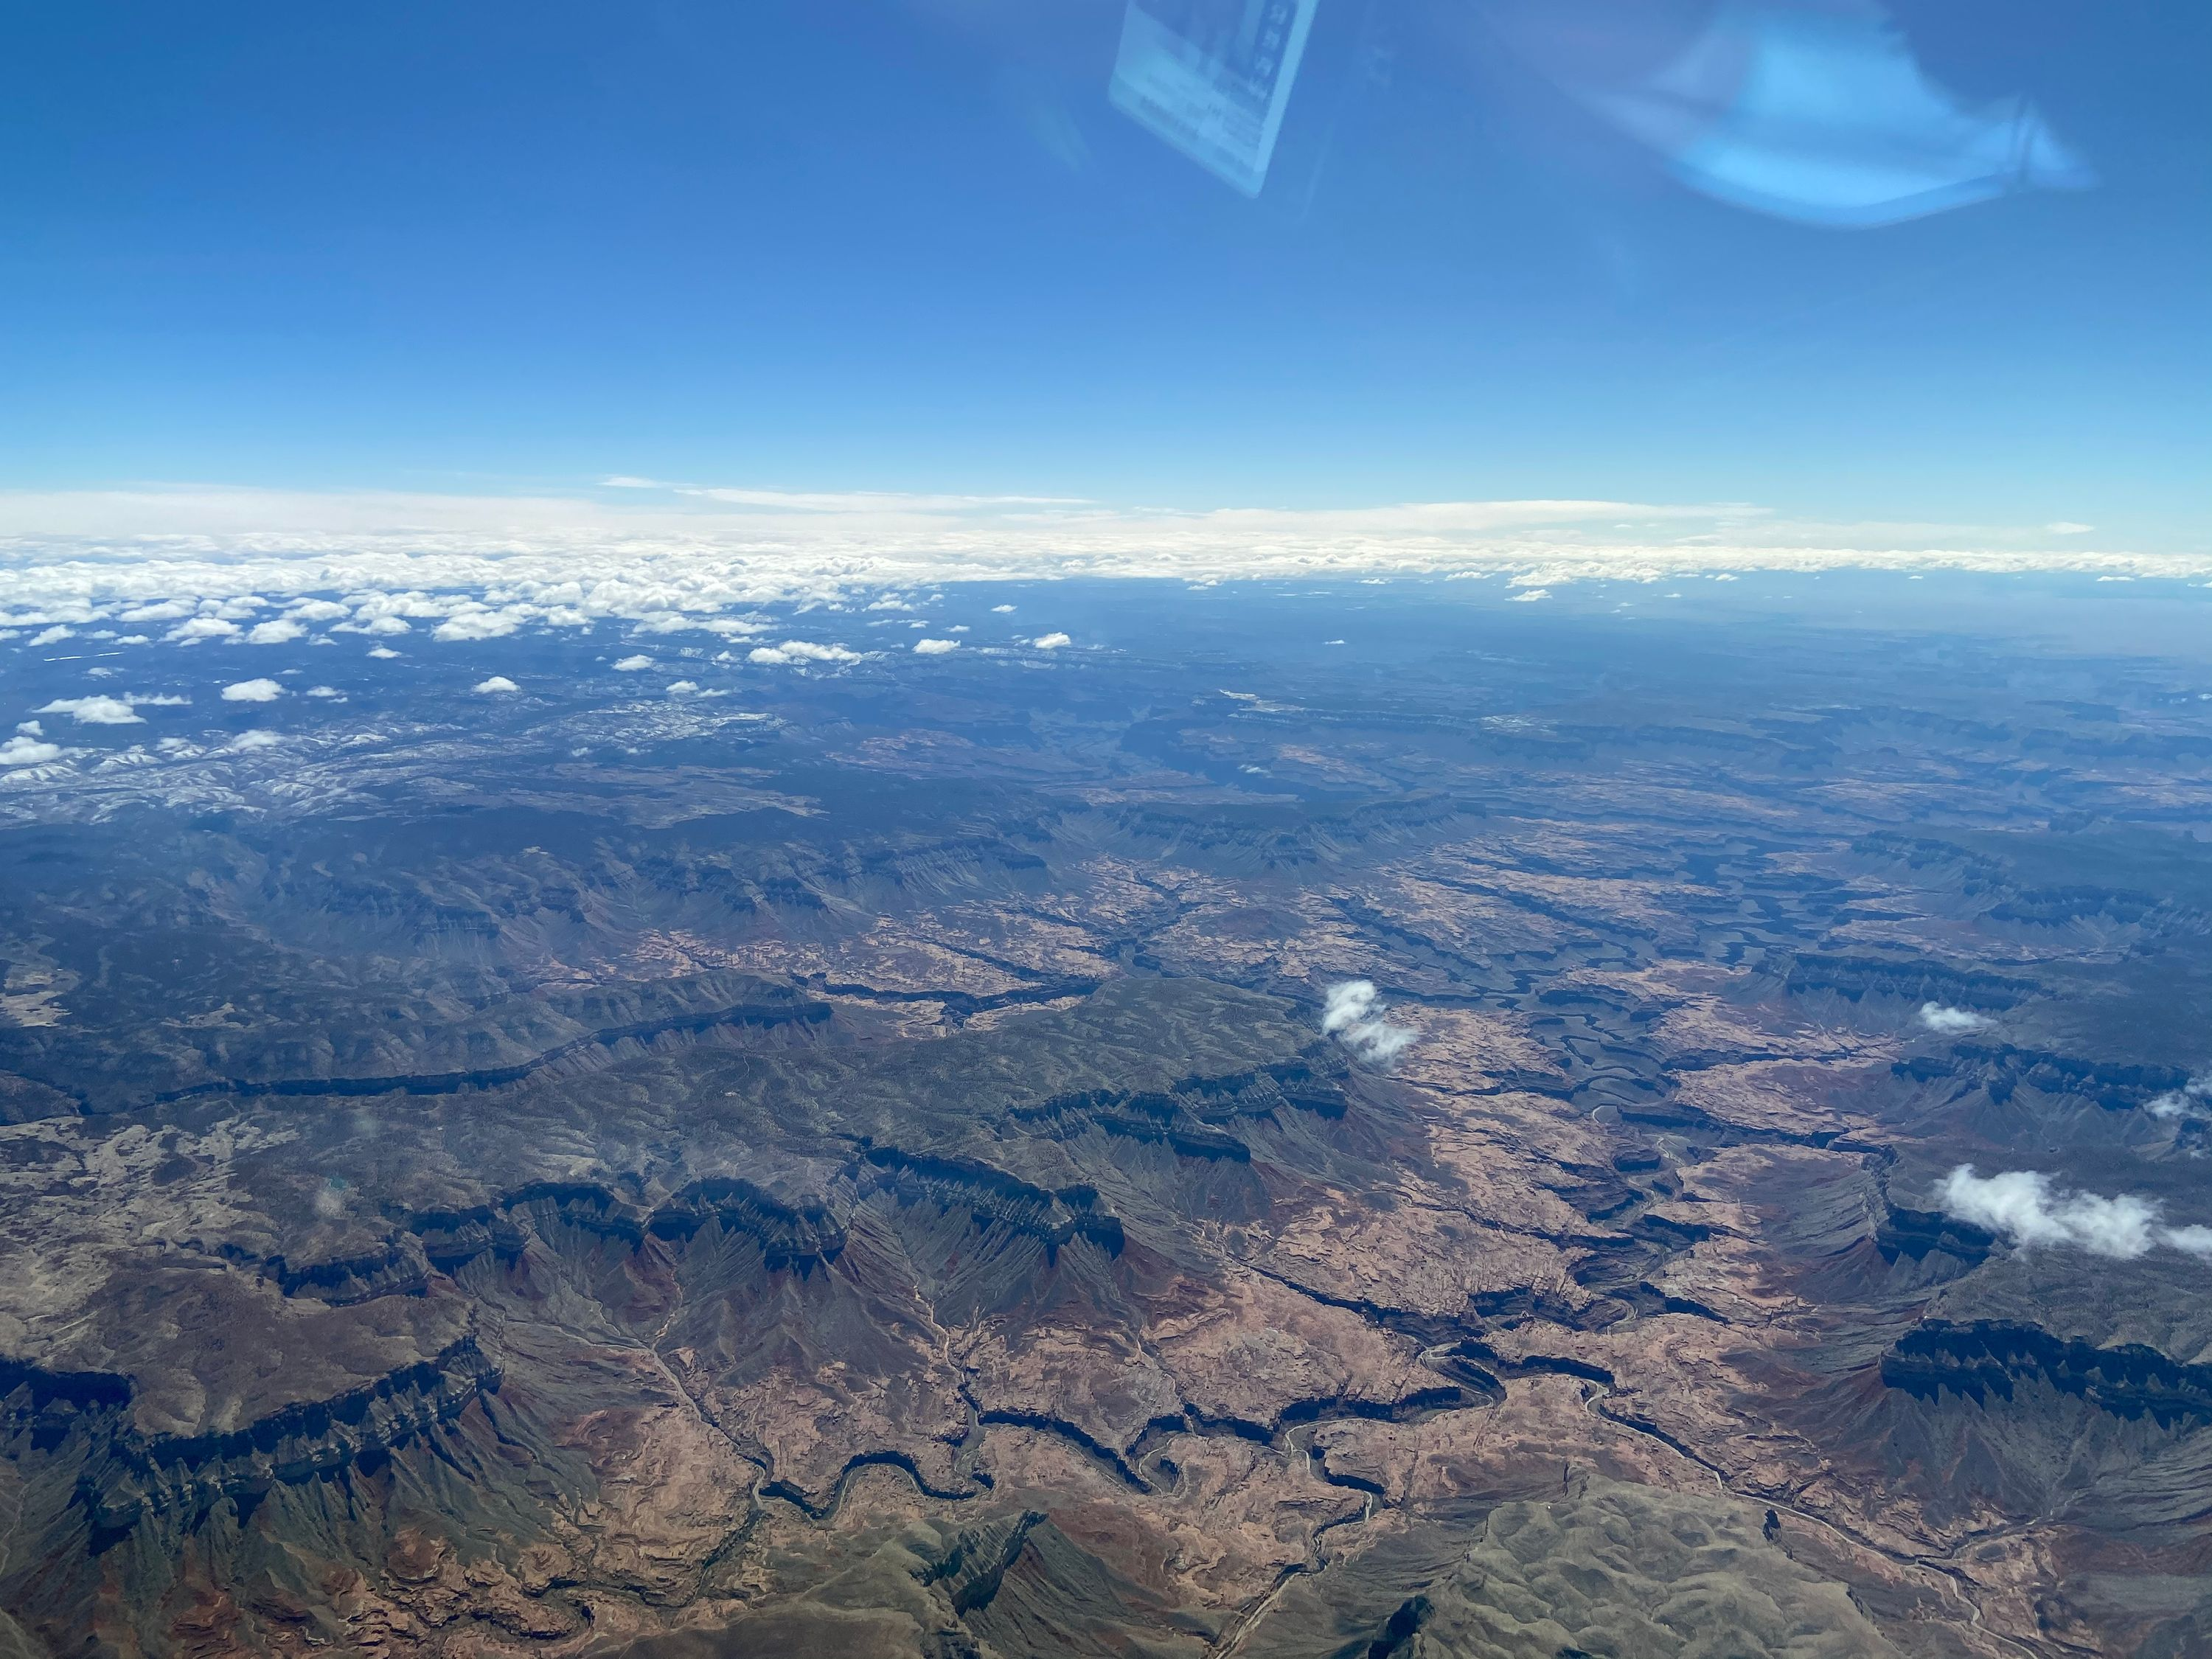 Flying over the Grand Canyon heading into Page